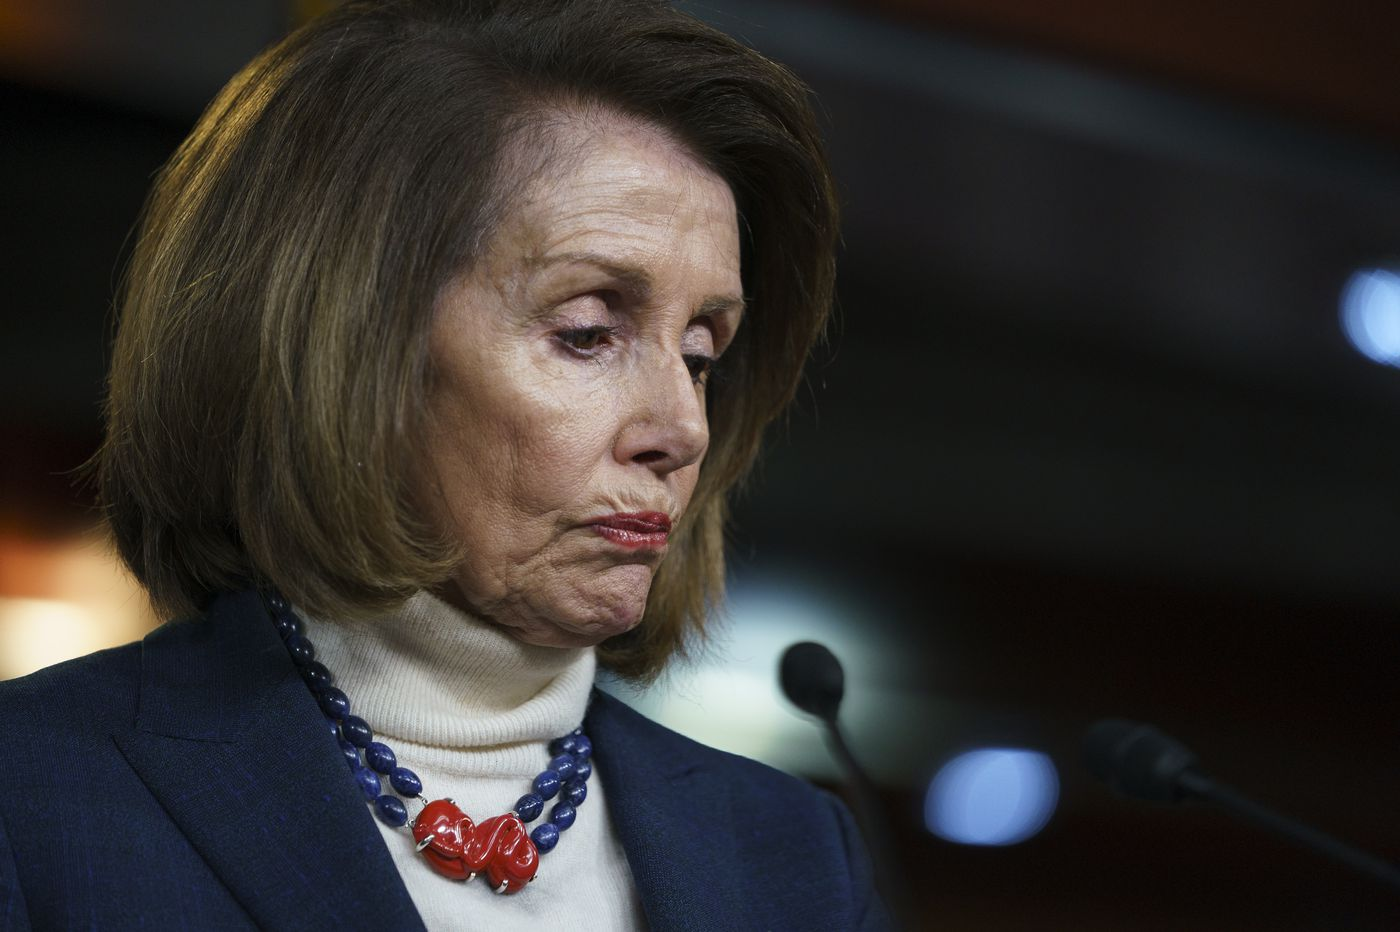 Security concerns created by Trump's disclosure will delay Afghanistan trip, Pelosi says